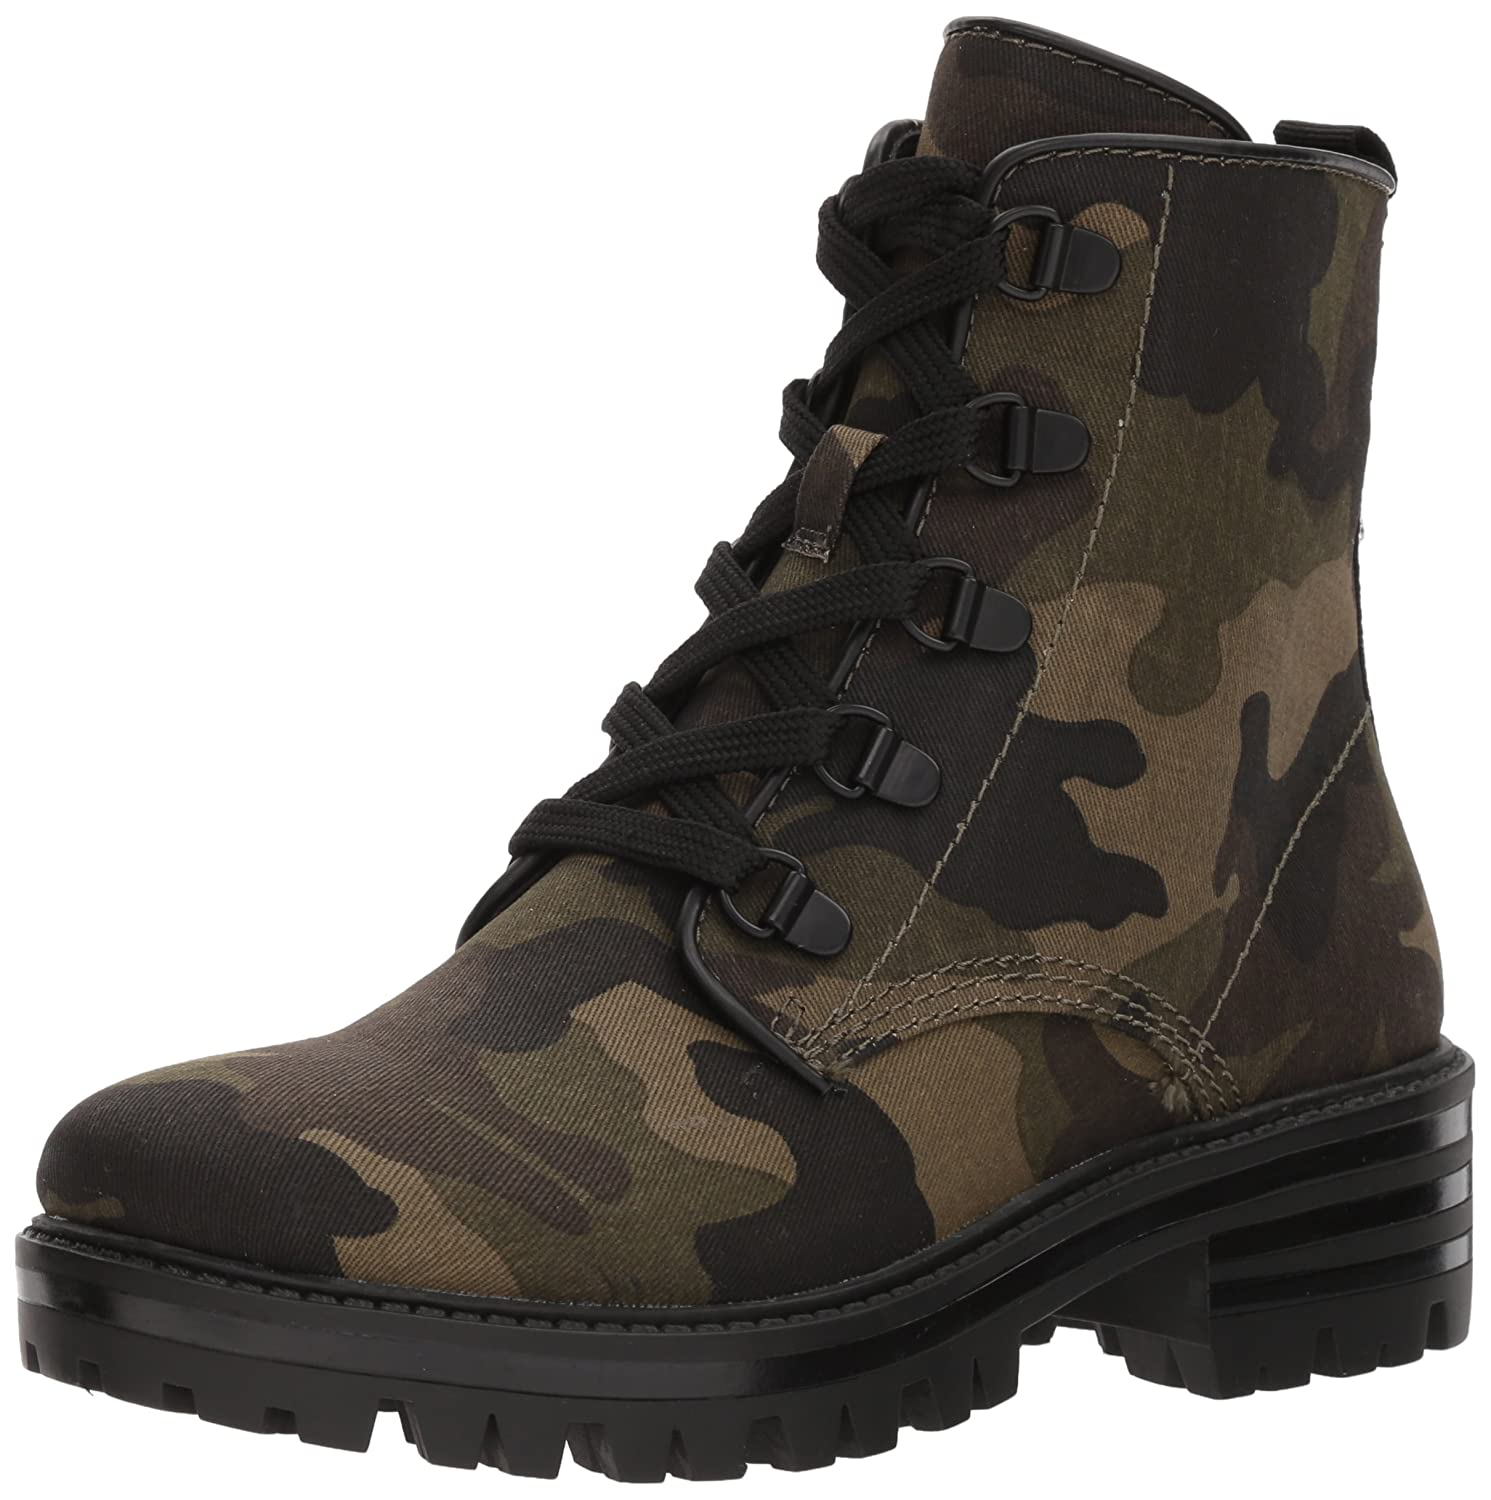 KENDALL + KYLIE Women's Epic Ankle Boot B078NJVVGV 6 B(M) US|Green Camo